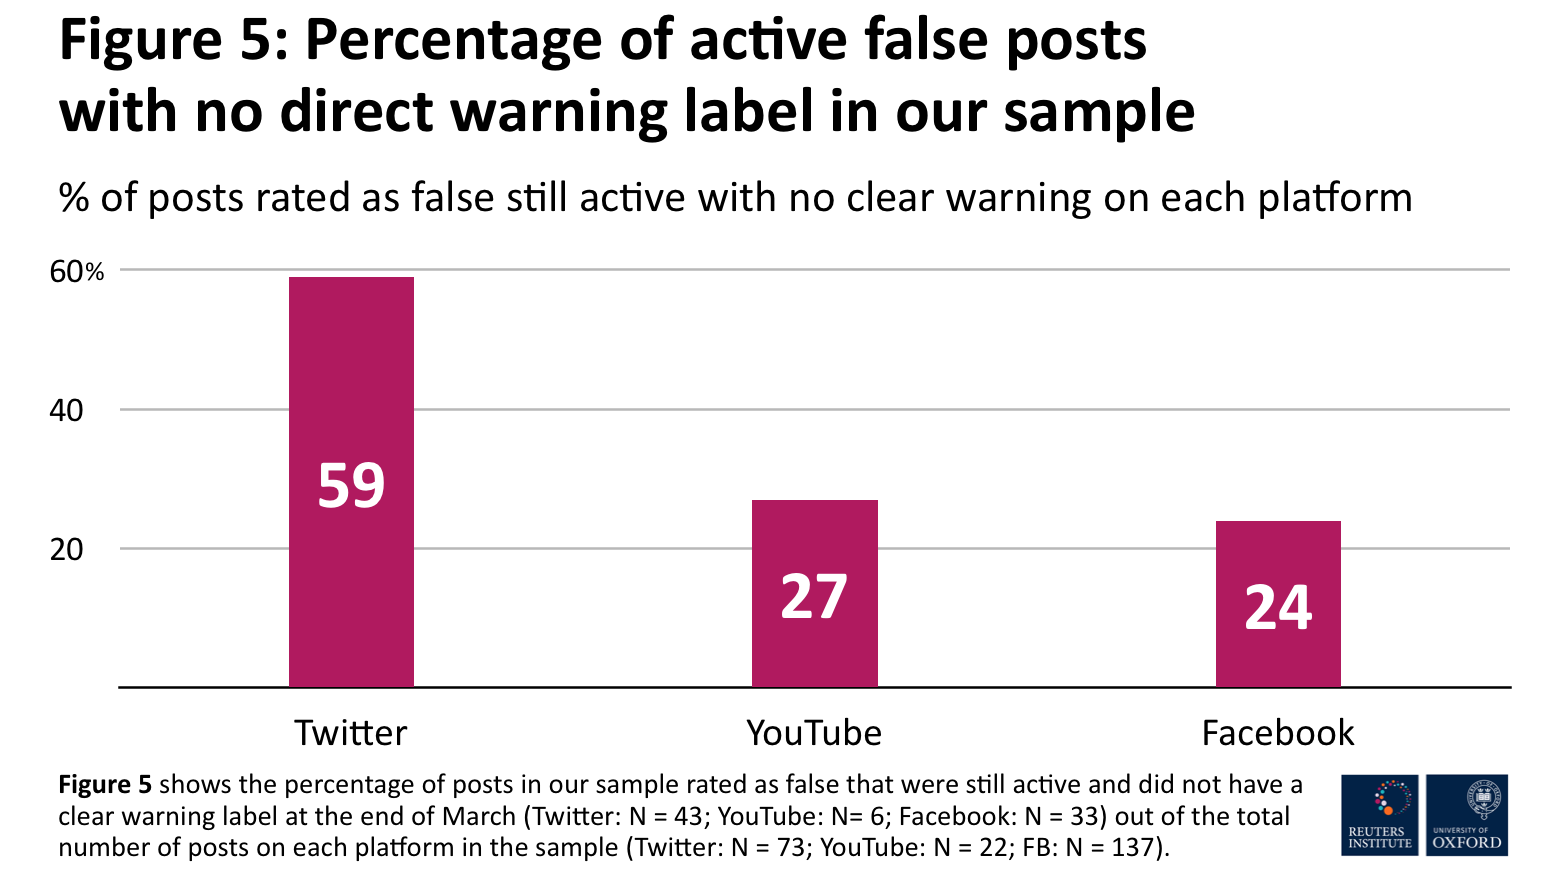 Percentage of active false posts with no direct warning label in our sample